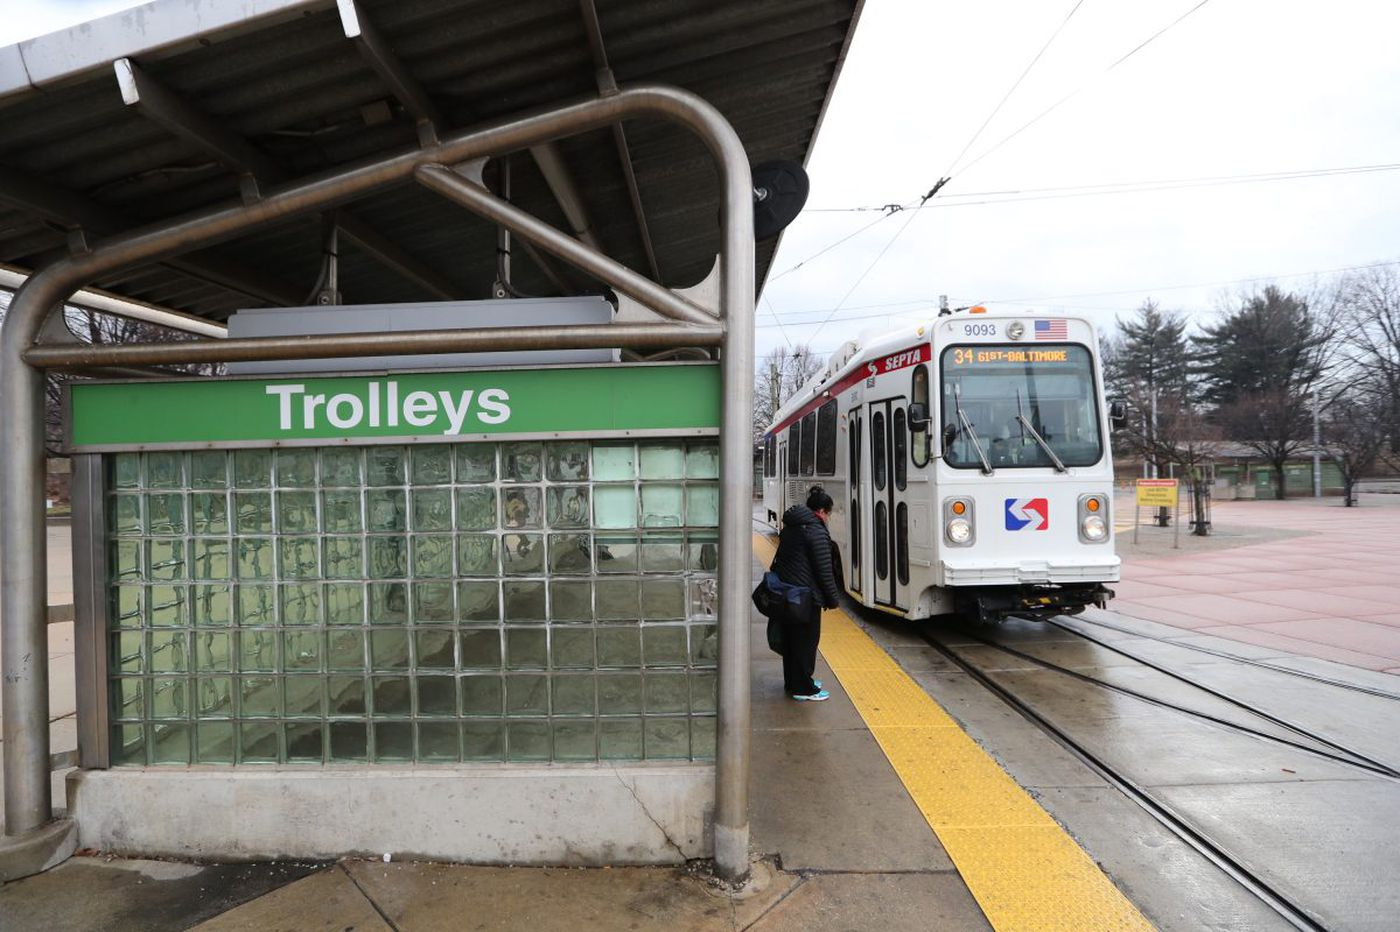 septa's trolley tunnel to be closed for repairs